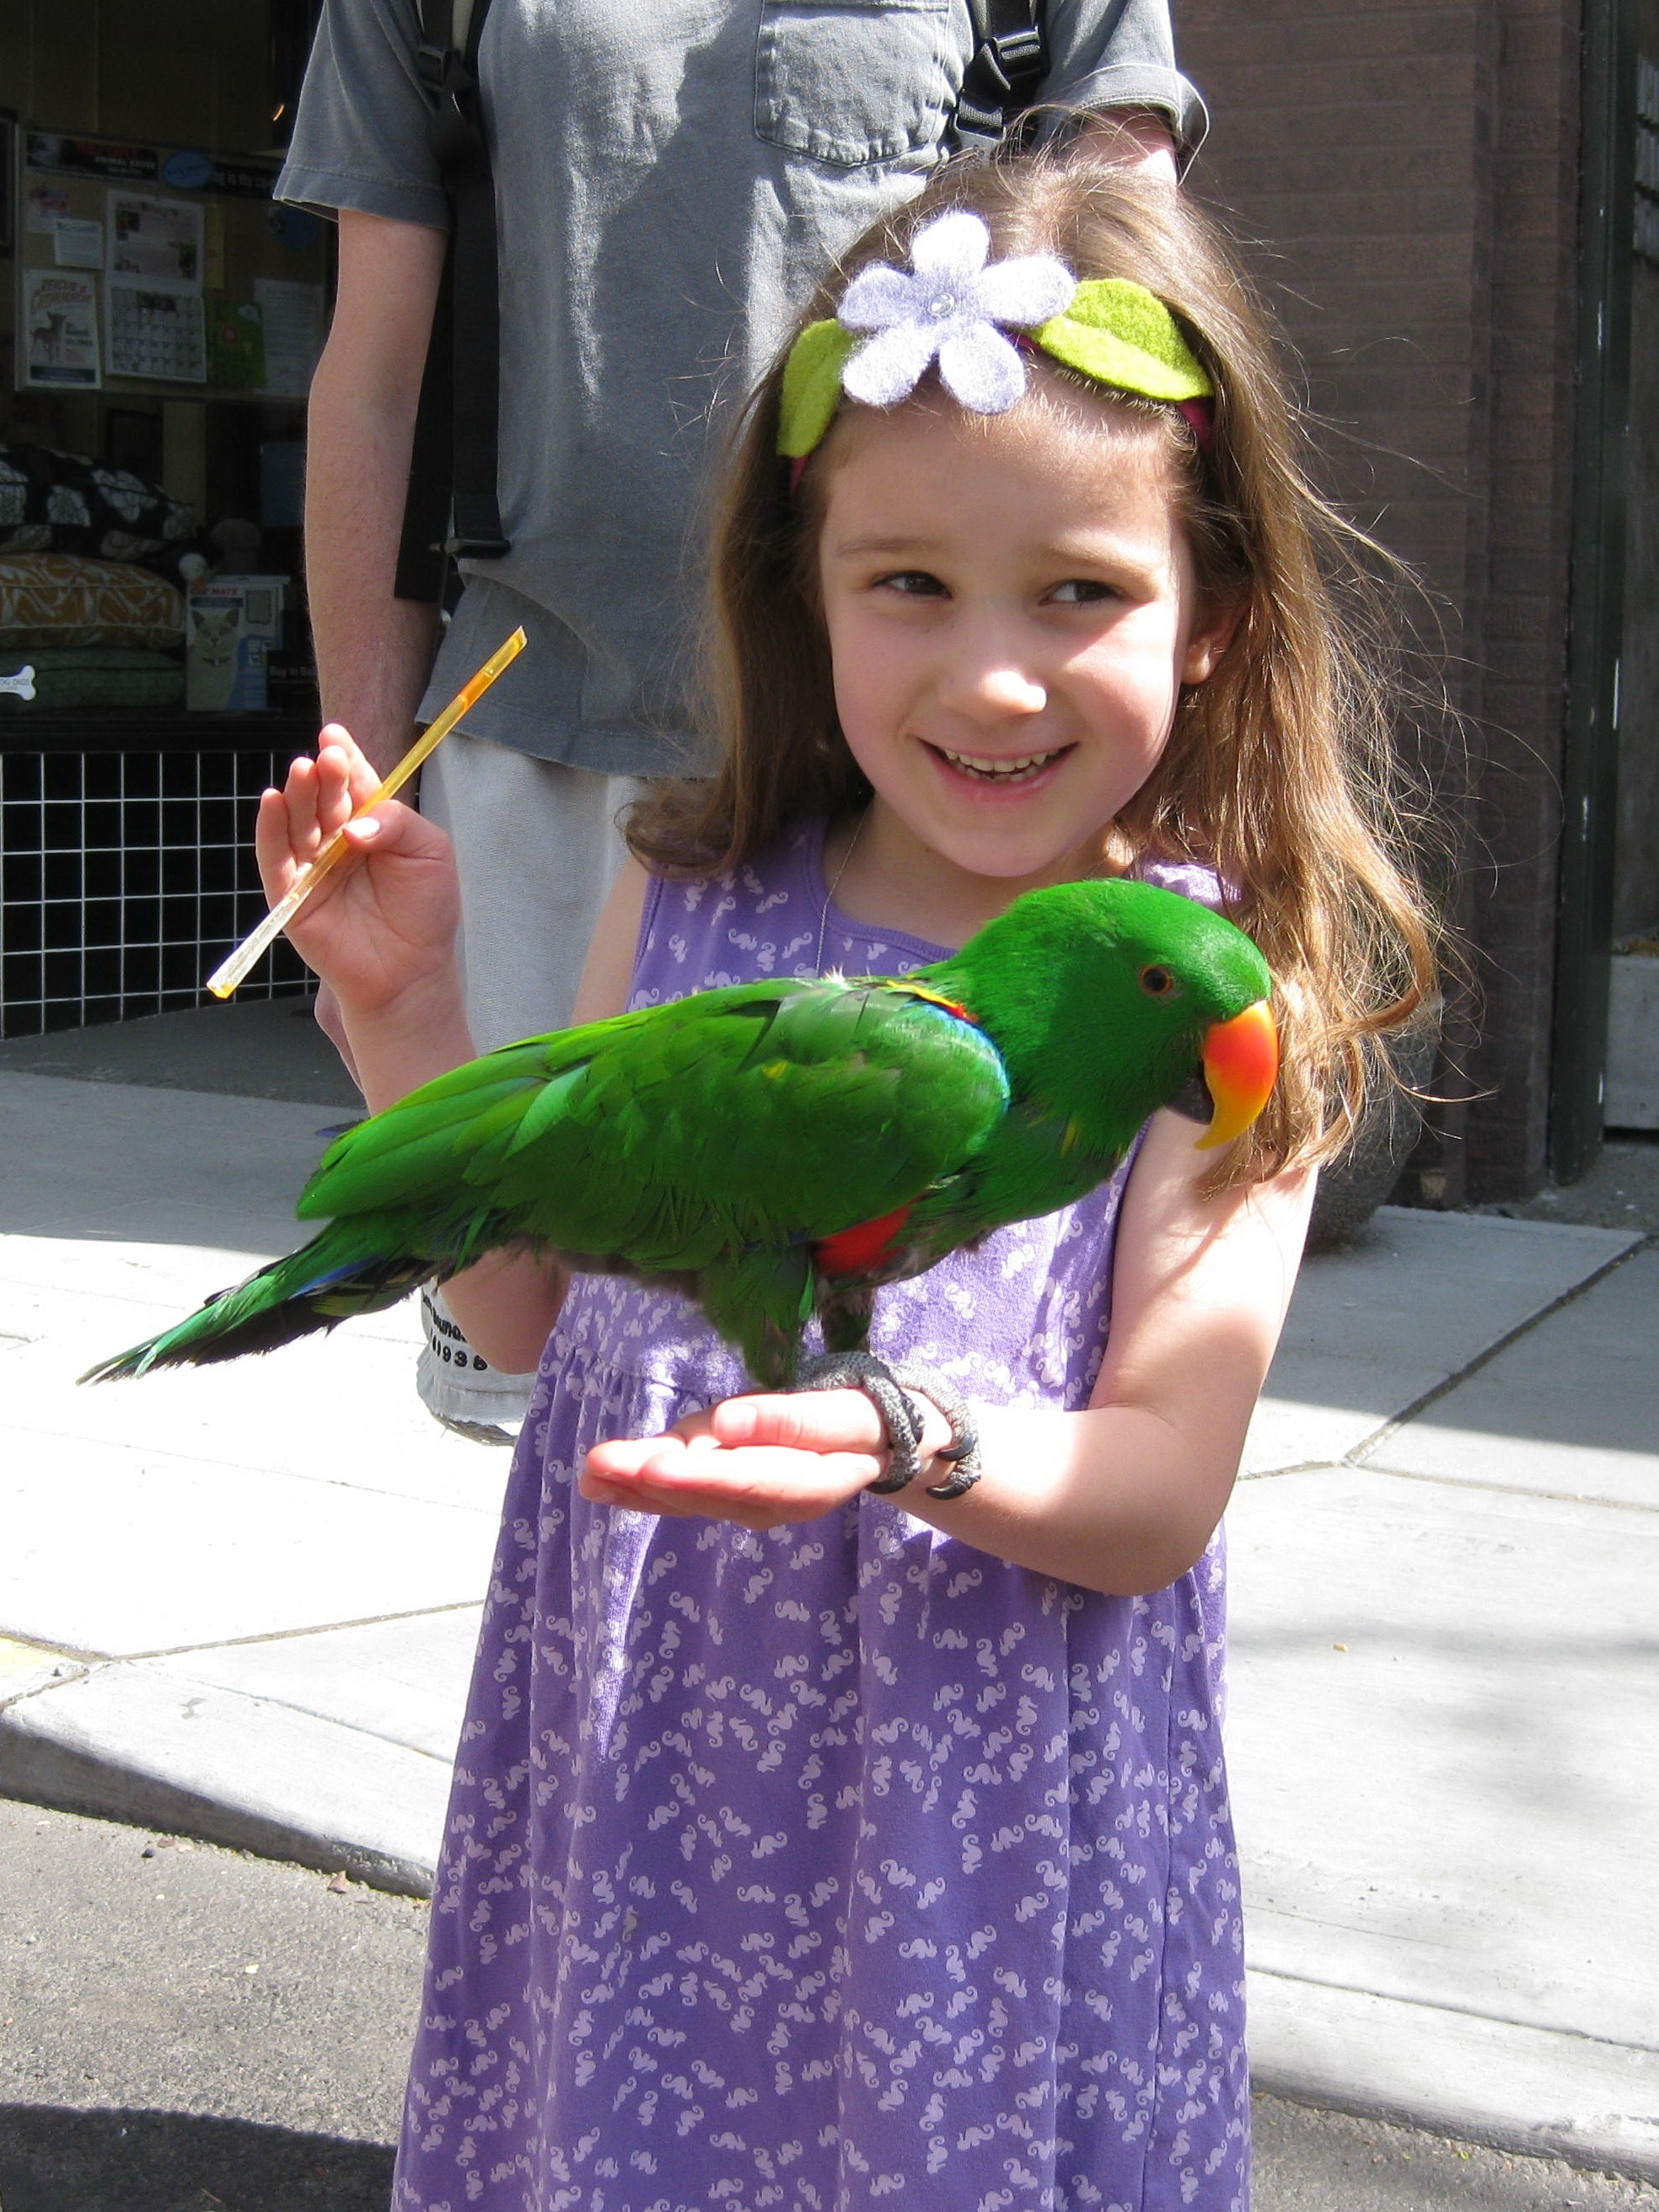 Hadley Mollman, a kindergardener at West Woodland Elementary, apparently found this bird at the Market. Photo sent in by dad, John Mollman, but taken by mom, Kimberly Andrews, on May 17th.